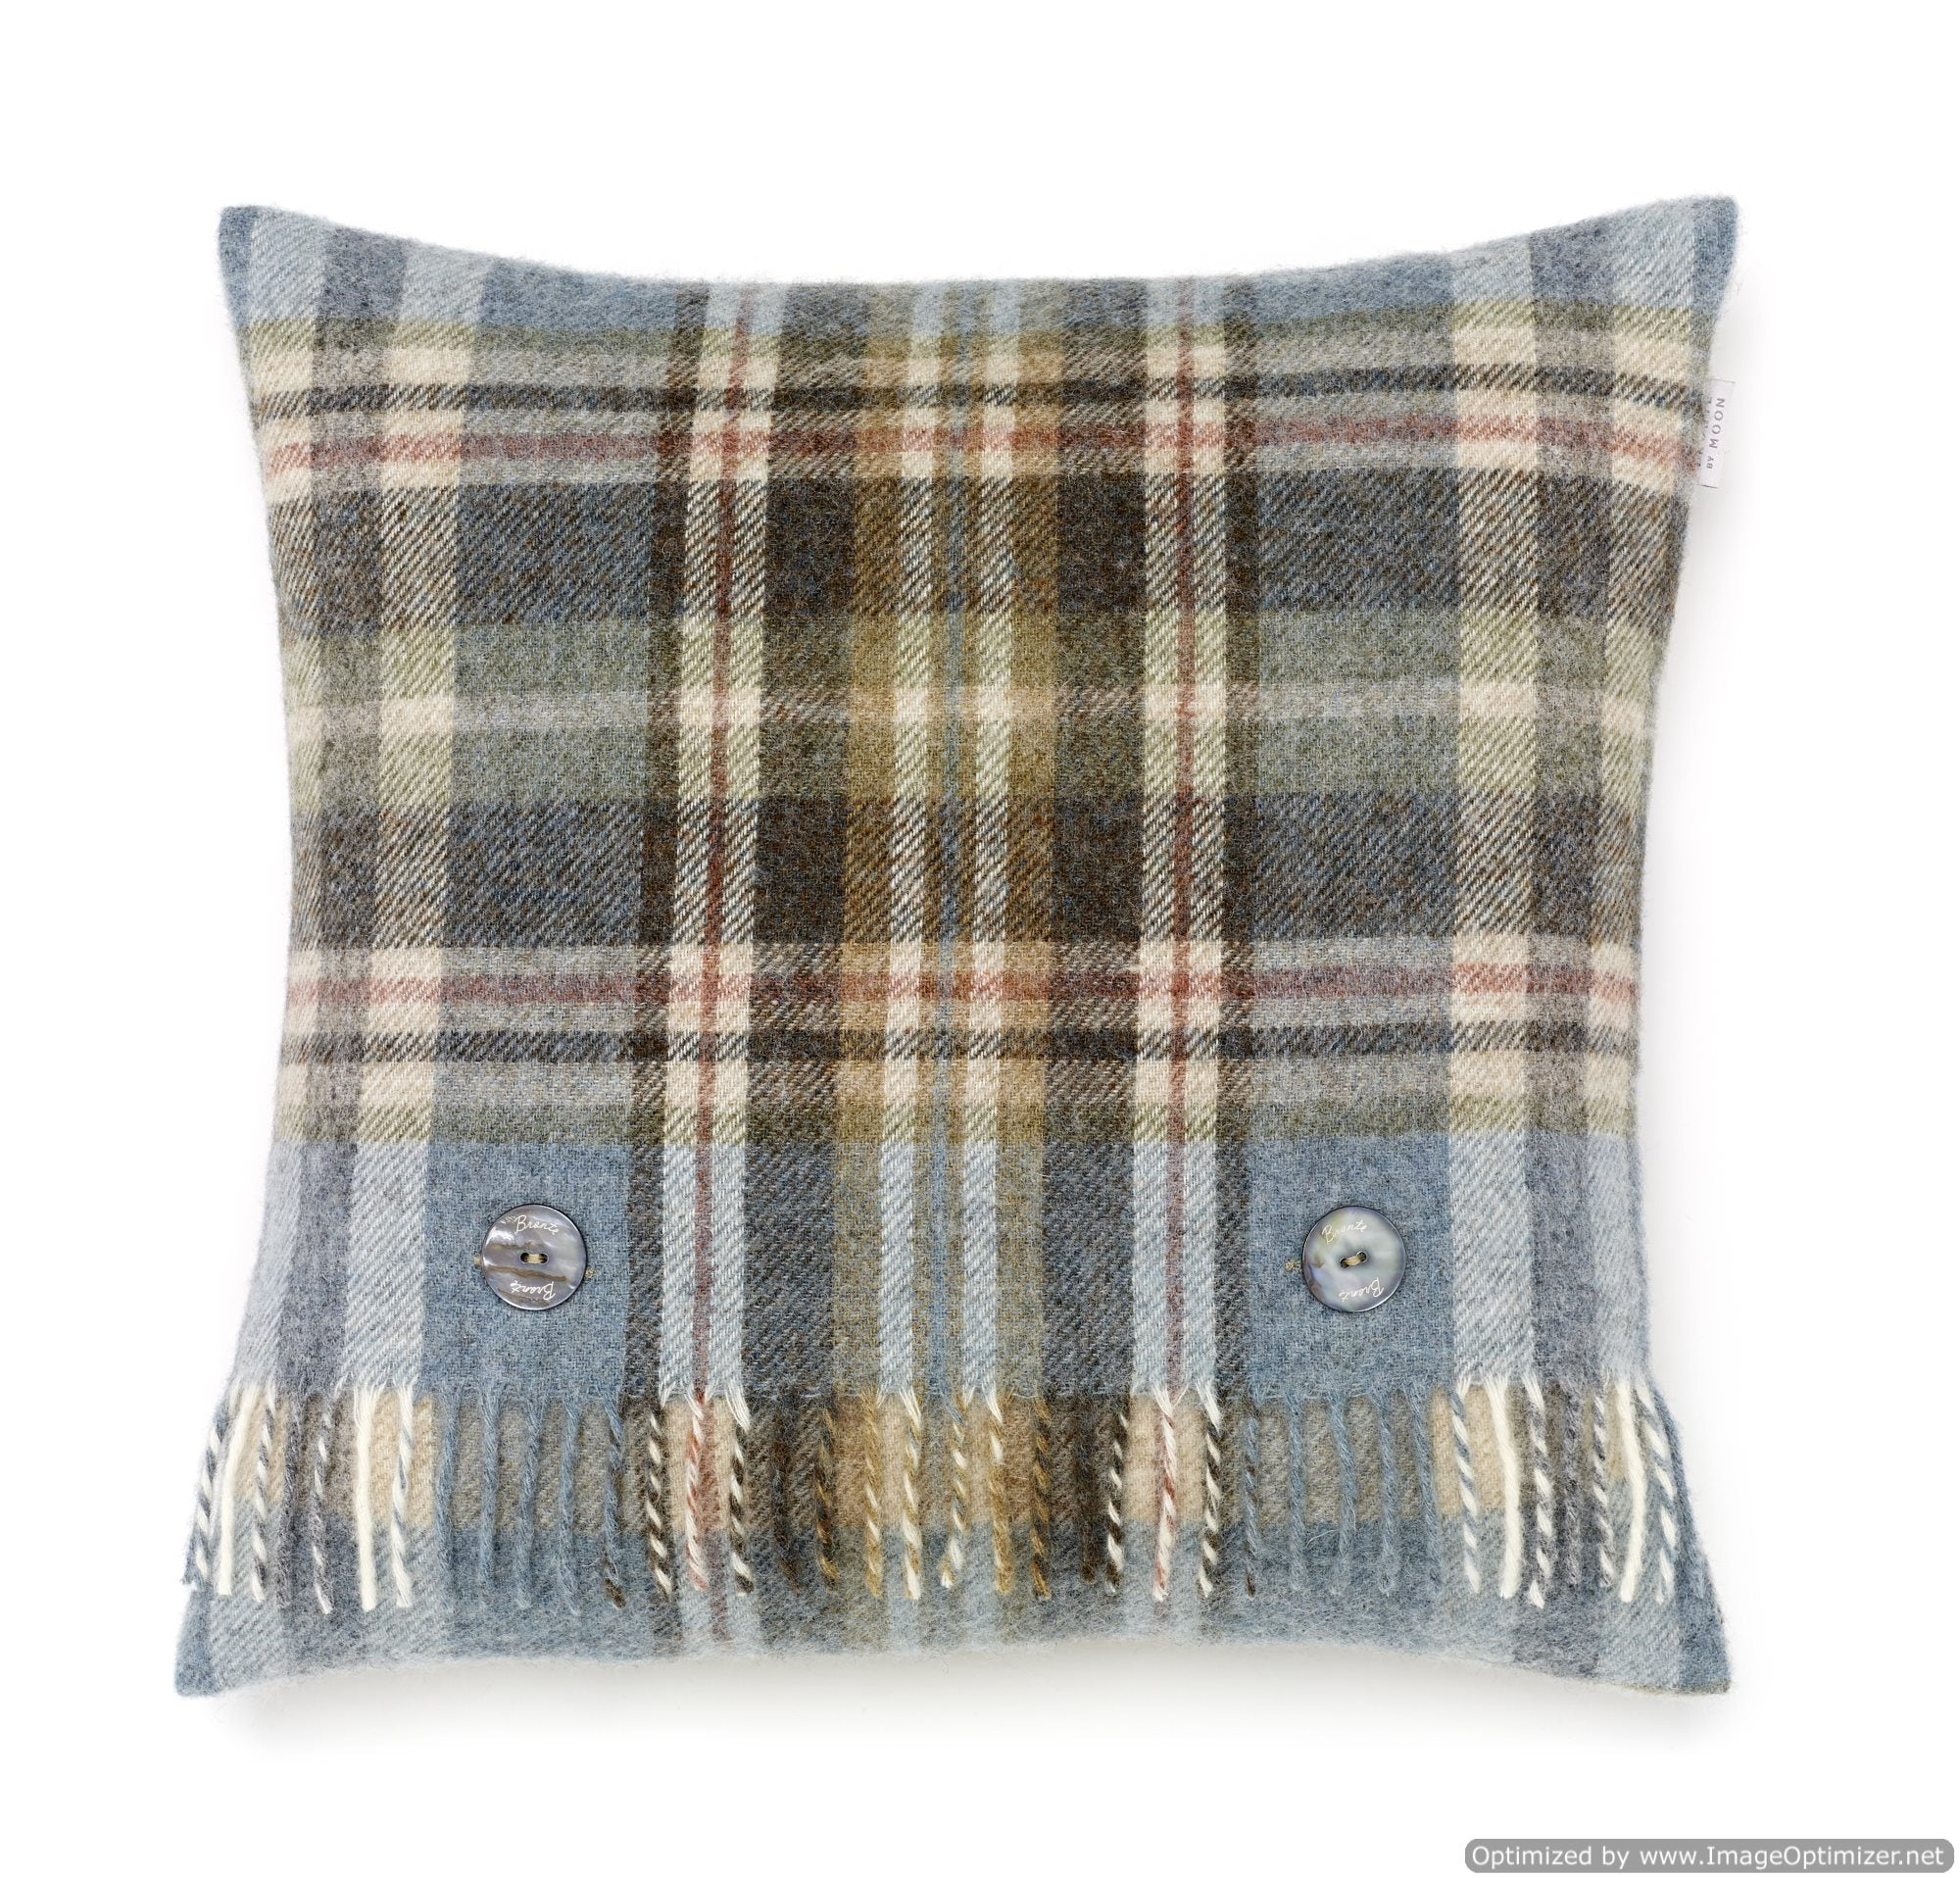 Pure New Wool Glen Coe Aqua Pillow